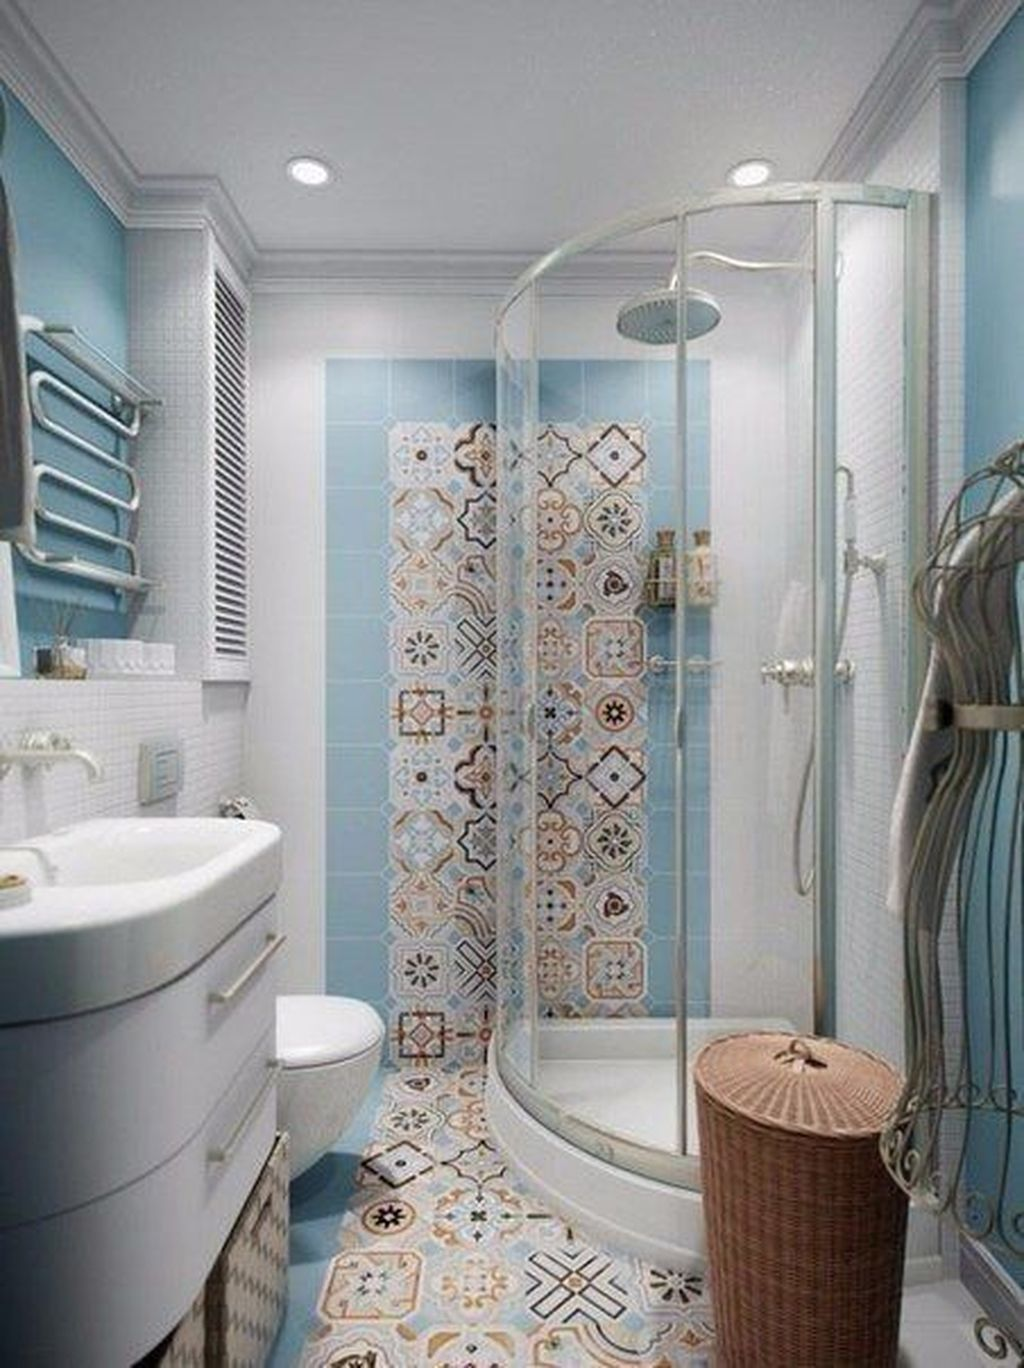 The Best Stone Tile Bathroom Ideas To Decorate Your Bathroom 23